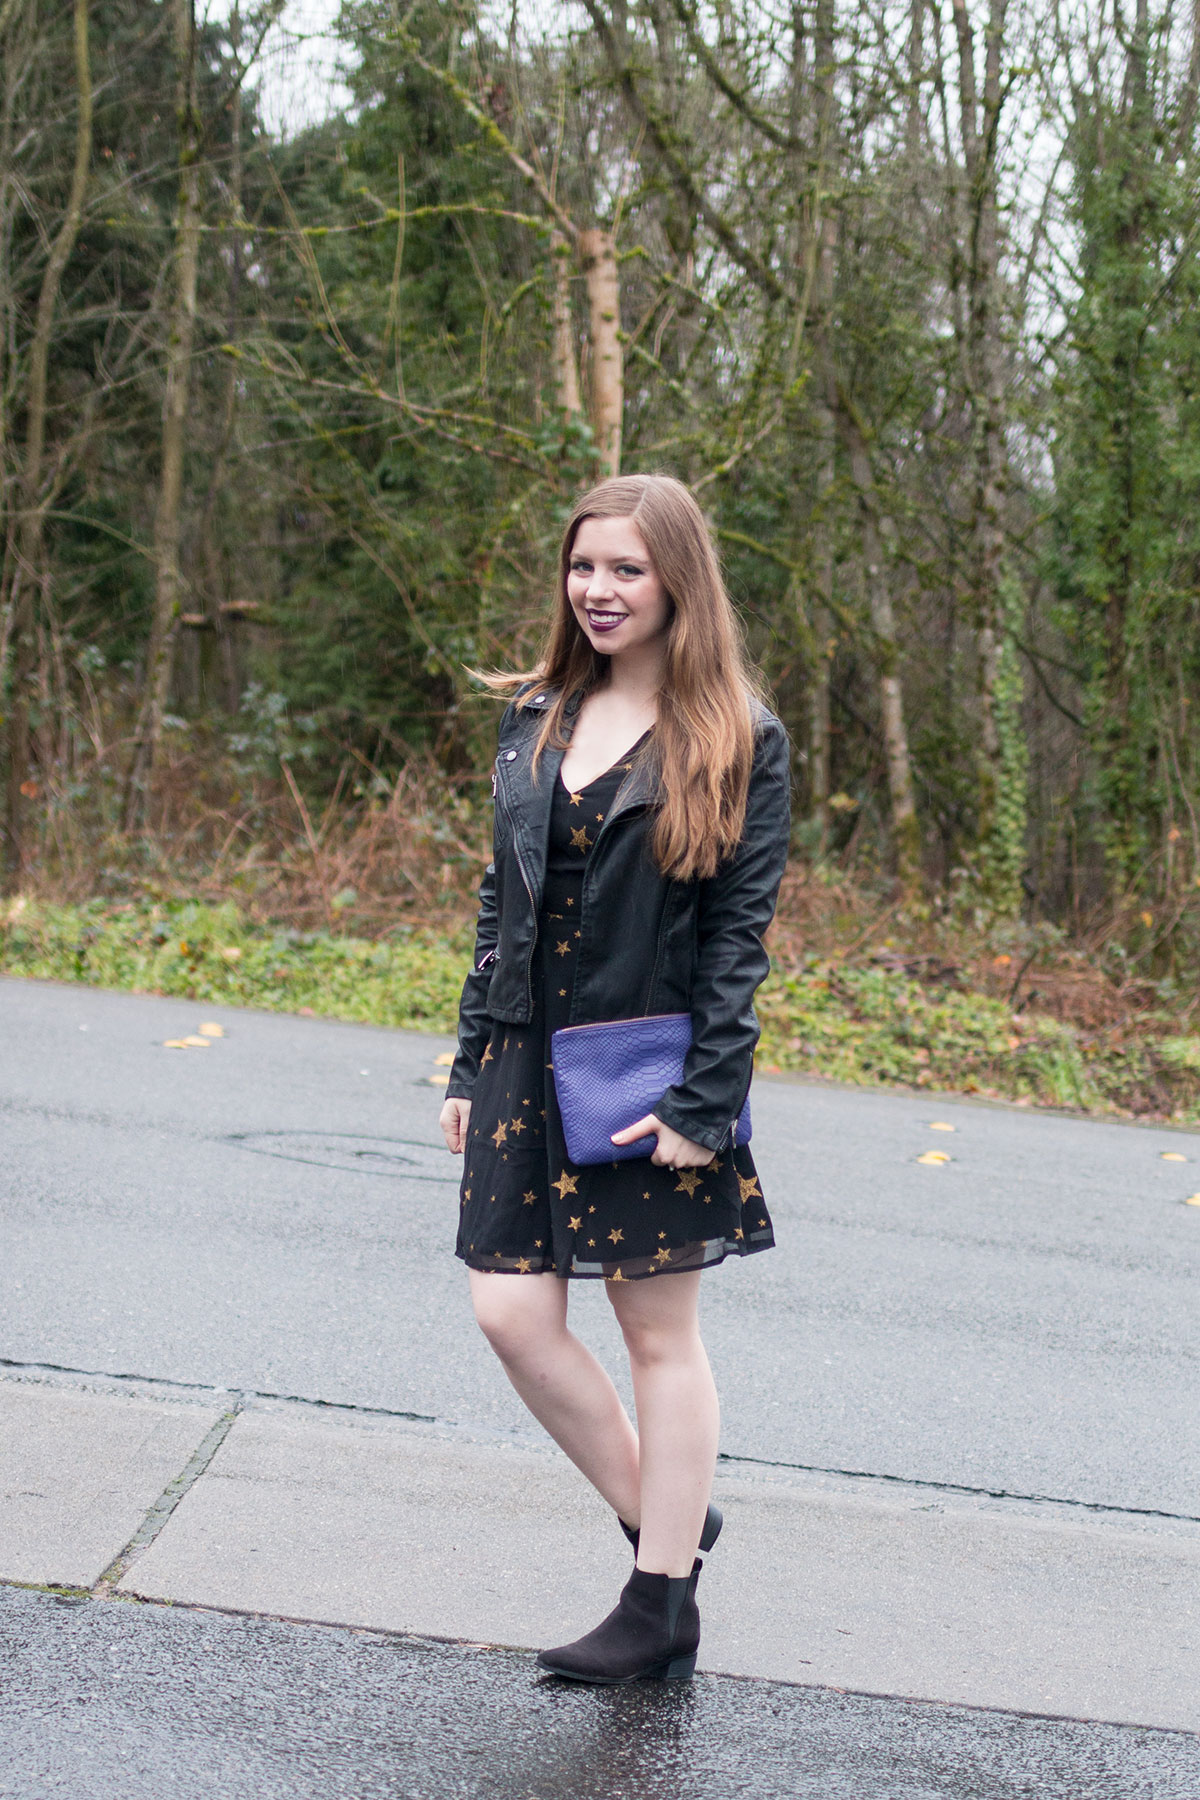 New Year Outfit Ideas: Casual ASOS Star Dress // hellorigby seattle fashion & beauty blog